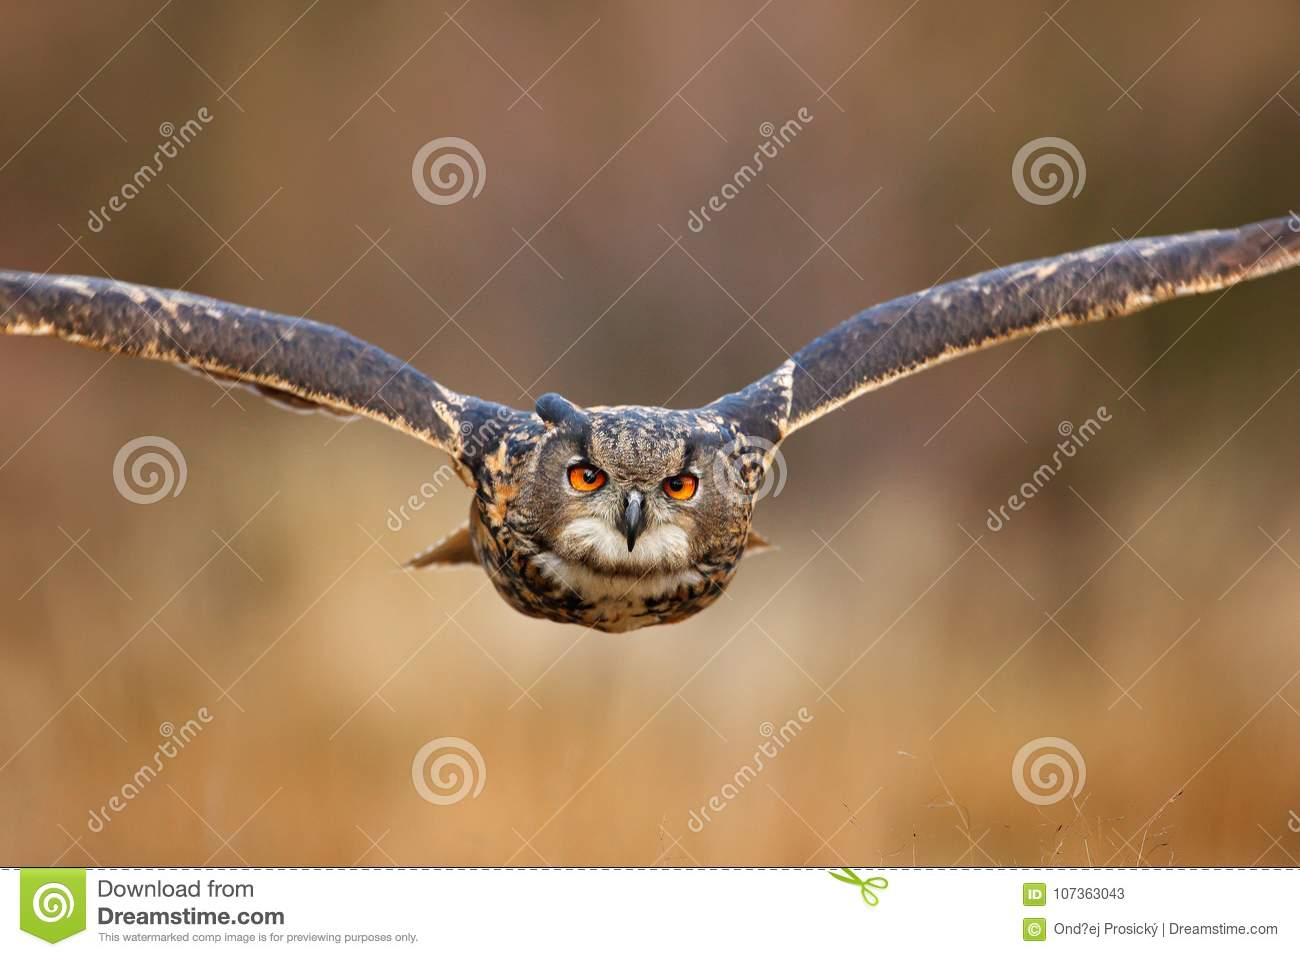 Flying bird with open wings in grass meadow, face to face detail attack fly portrait, orange forest in the background, Eurasian Ea